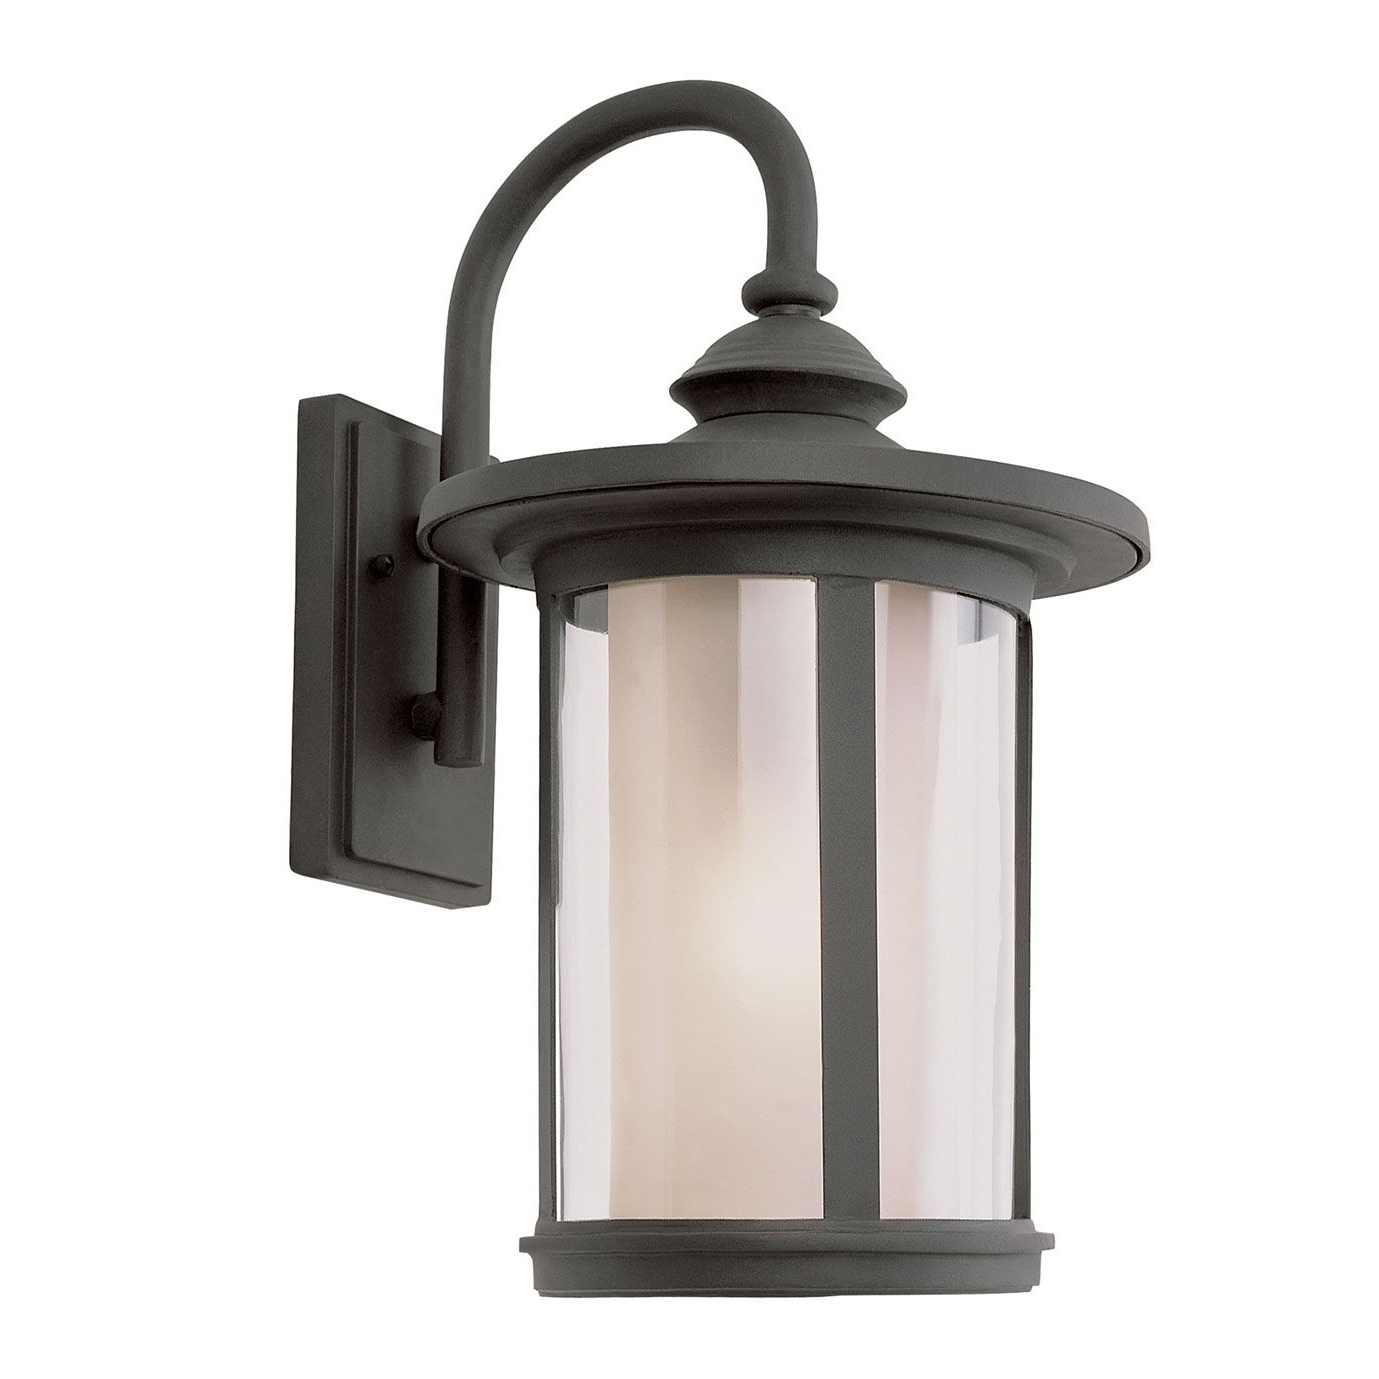 P> Chimney Stack Outdoor Wall Lantern Features Tea Stain Clear Pertaining To Fashionable Outdoor Weather Resistant Lanterns (Gallery 10 of 20)